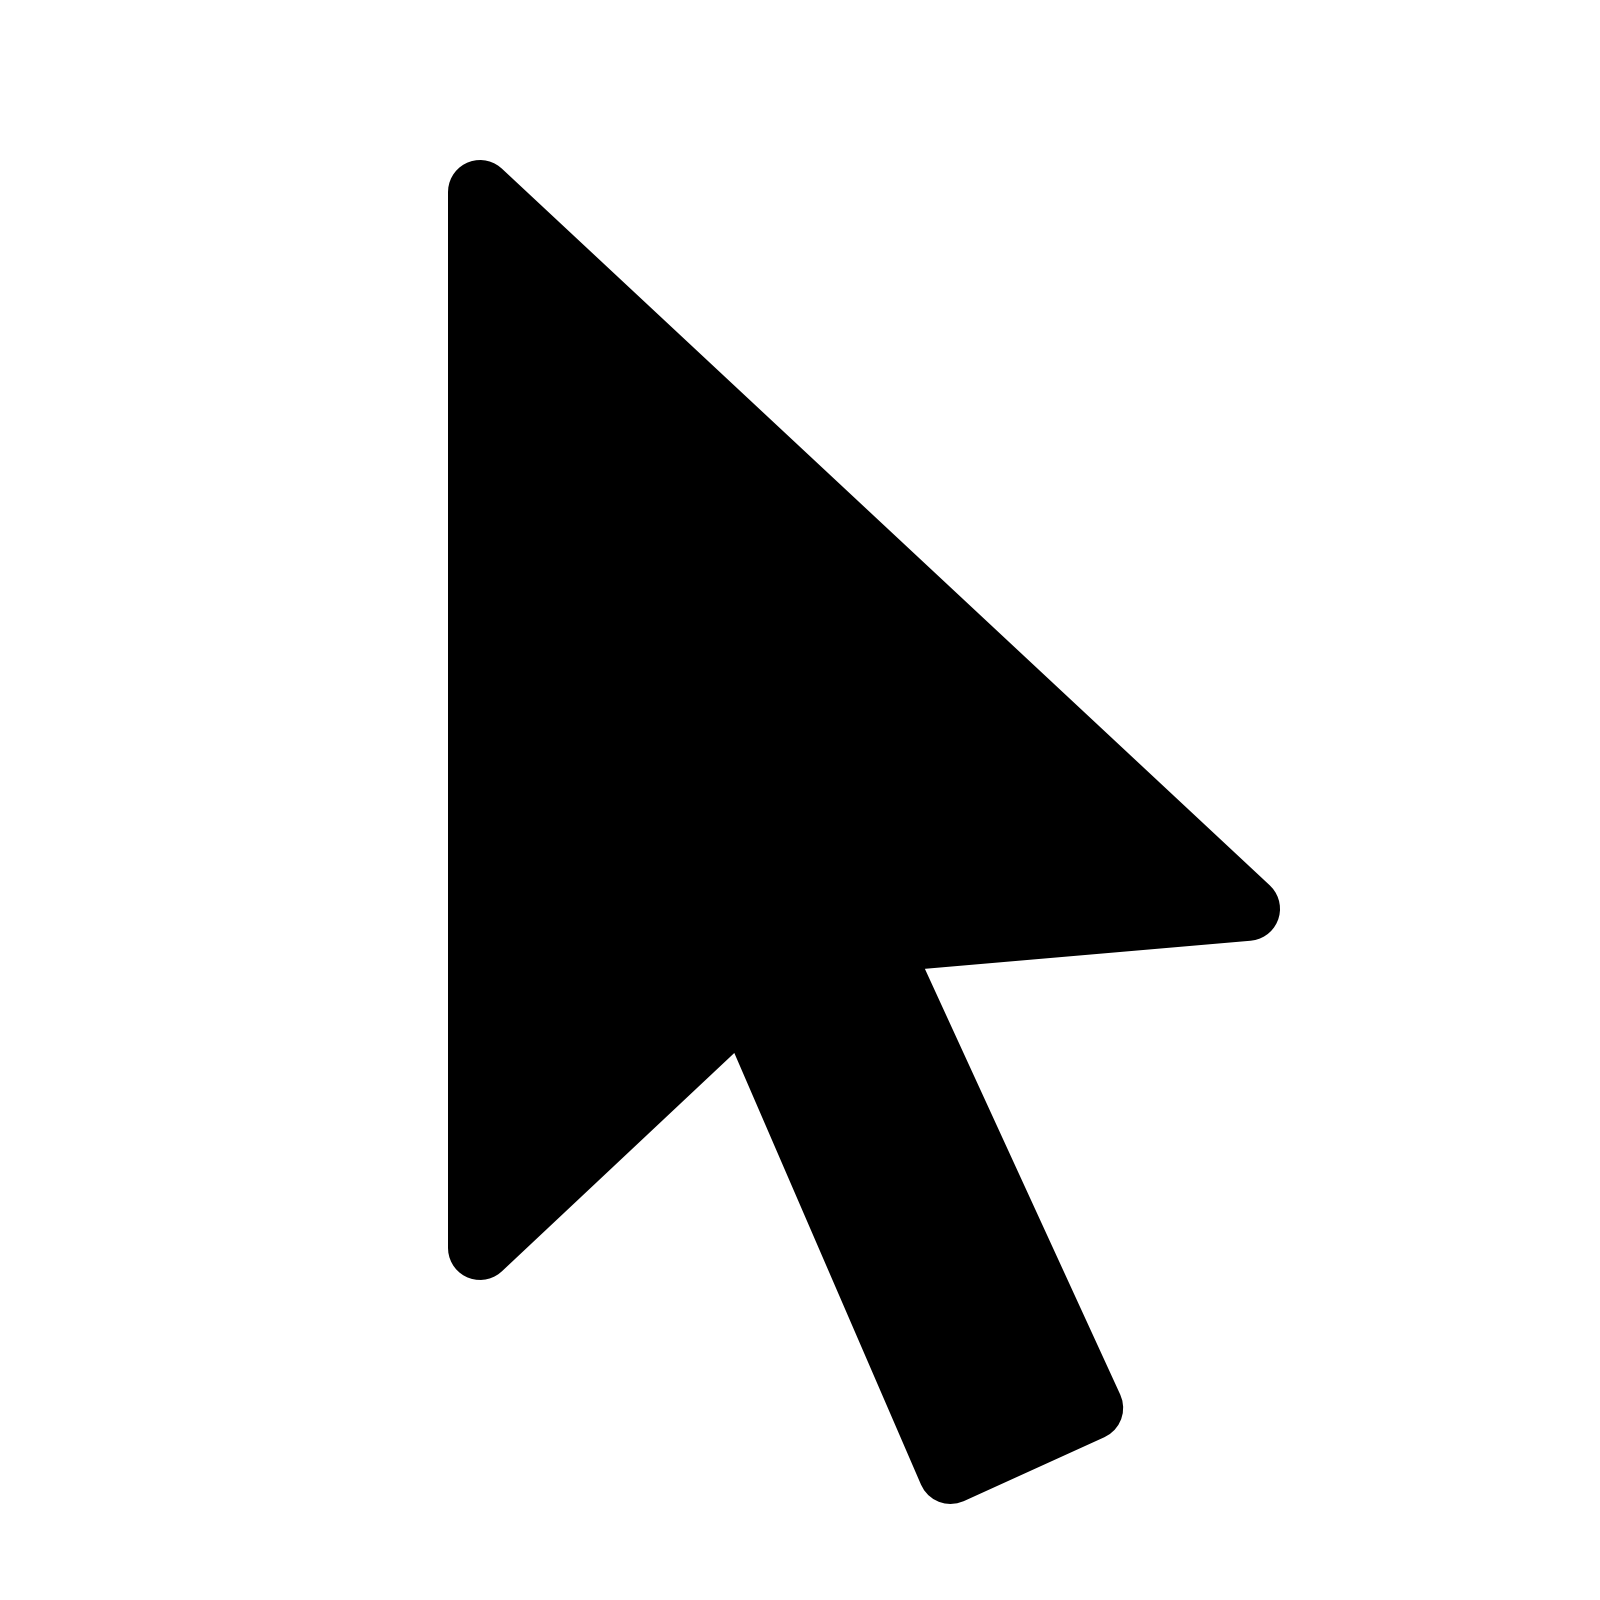 Cursor images free download. Mouse icon png